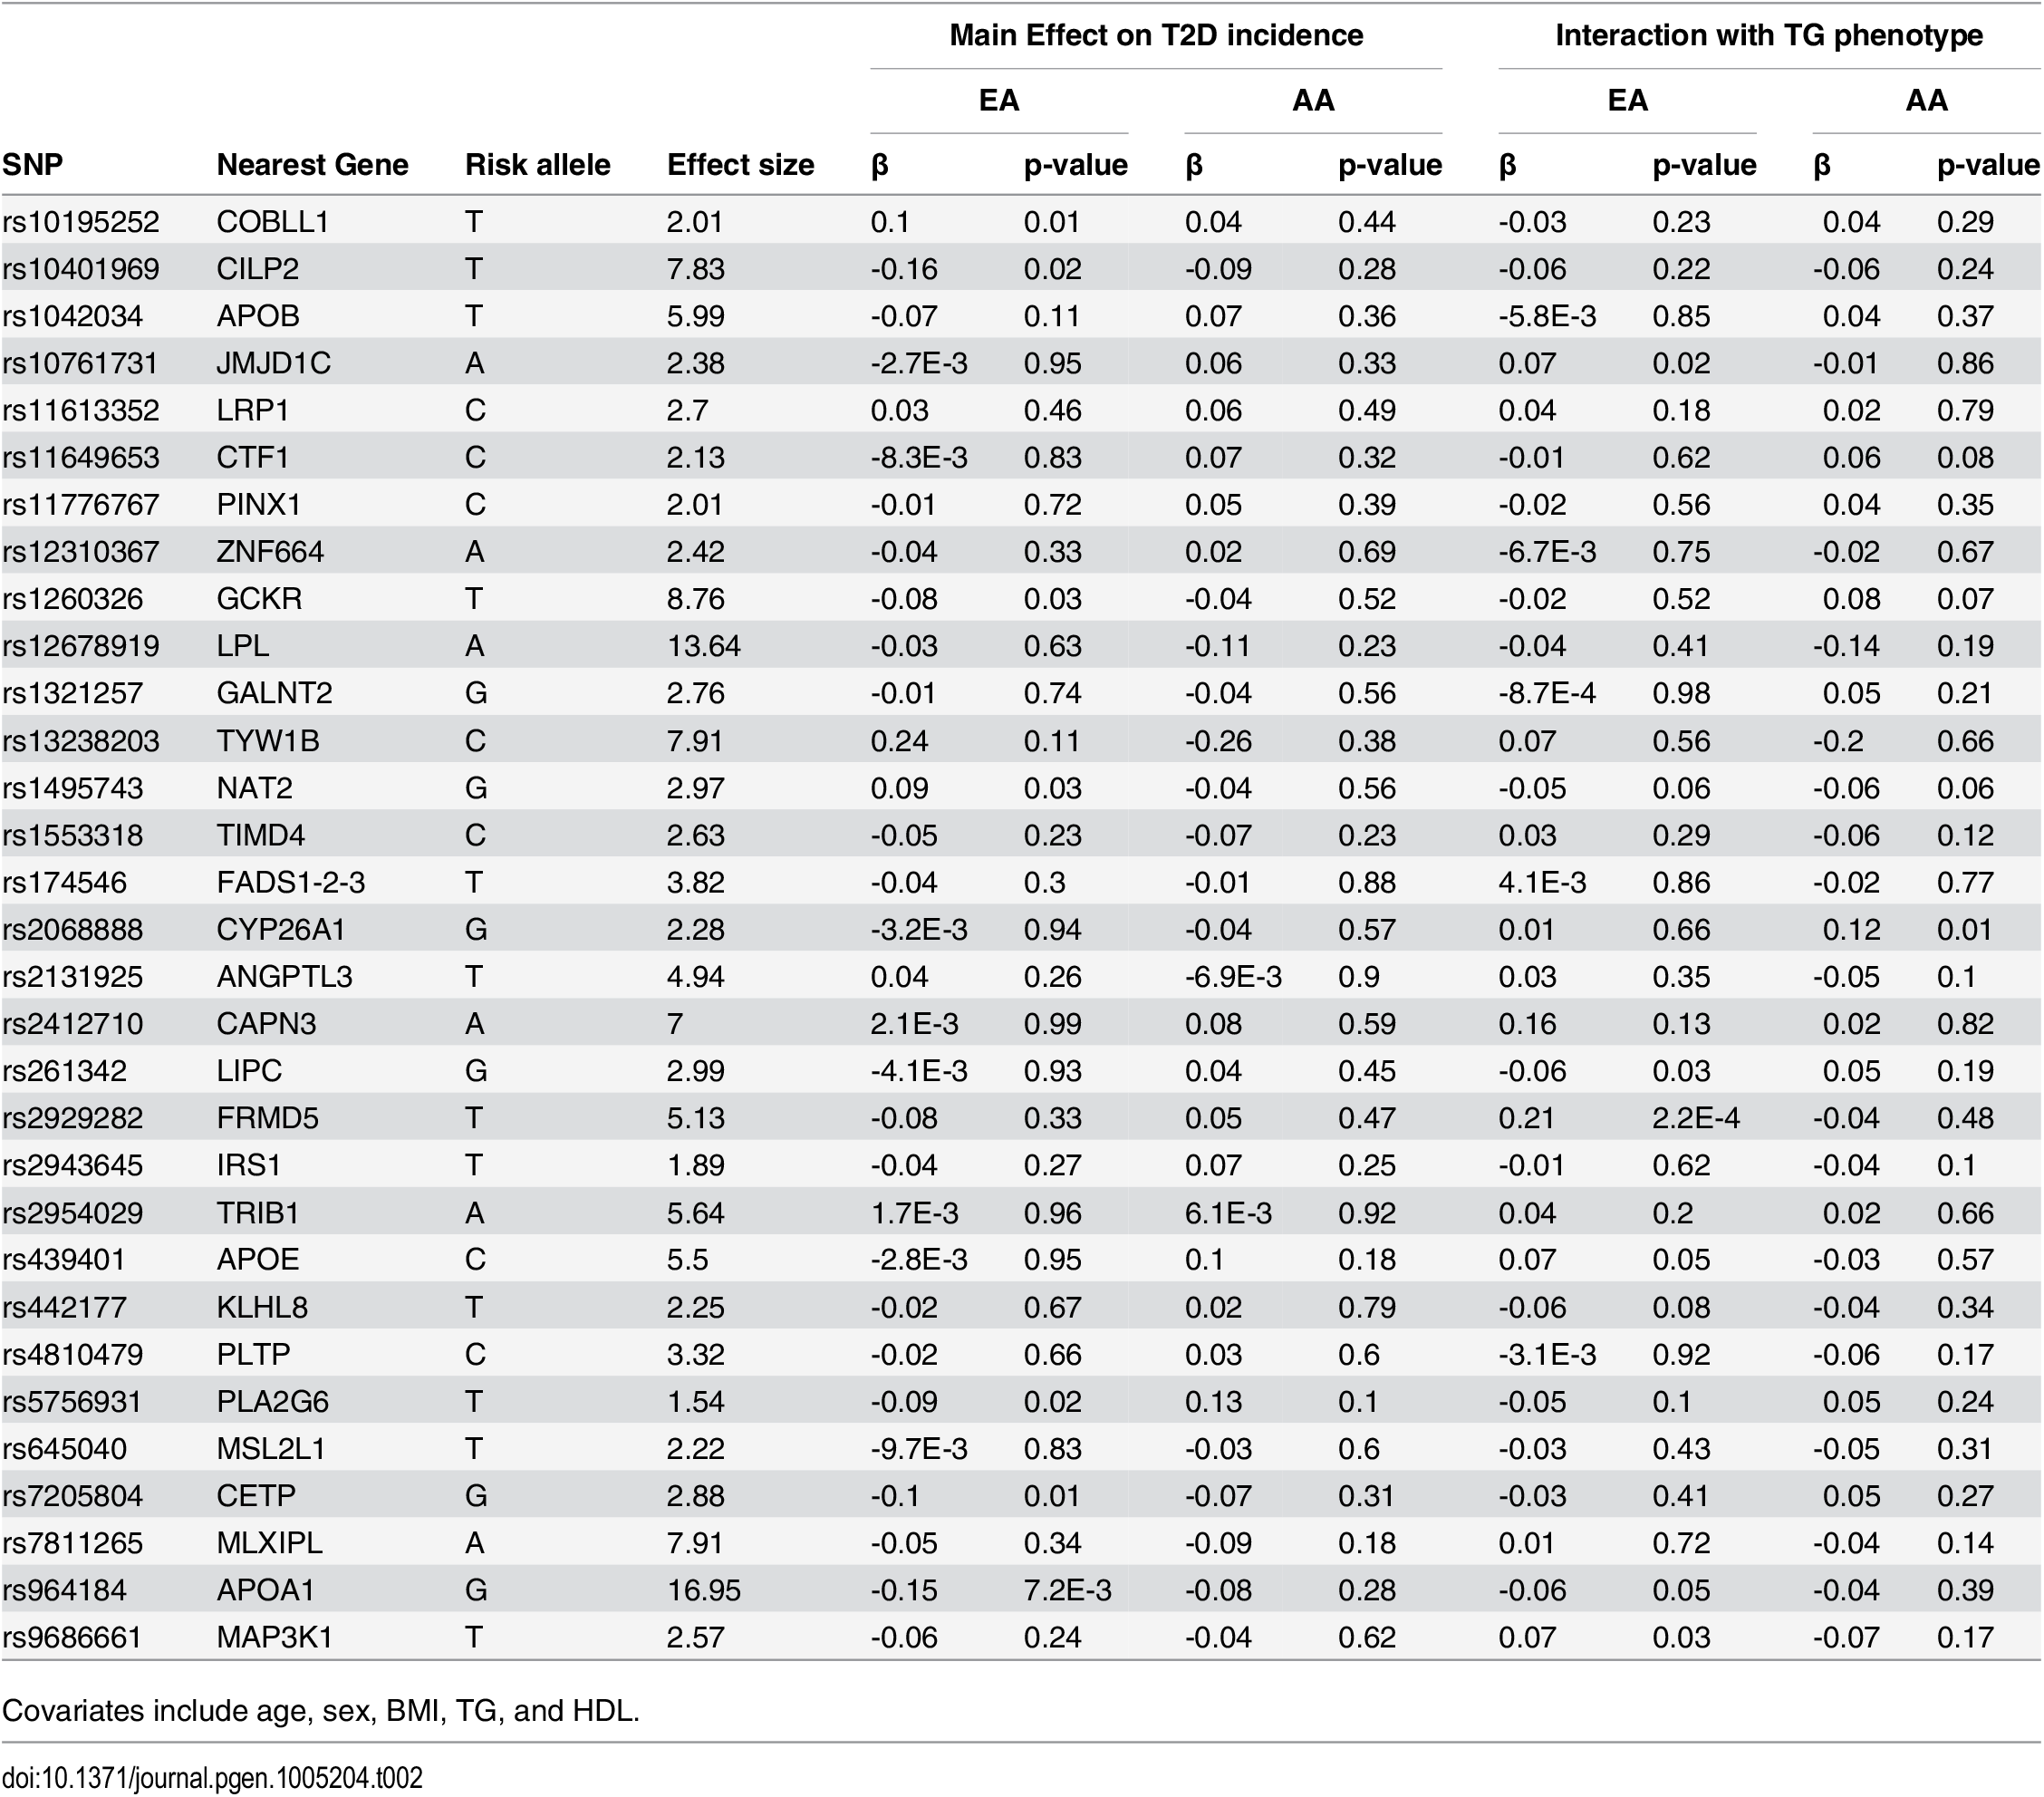 List of 31 triglyceride (TG)-associated SNPs with their respective genomic position, risk allele (TG increasing), TG effect size (weight used in GRS), association with T2D incidence, and interaction with TG phenotype in European- and African-Americans (EA, AA).